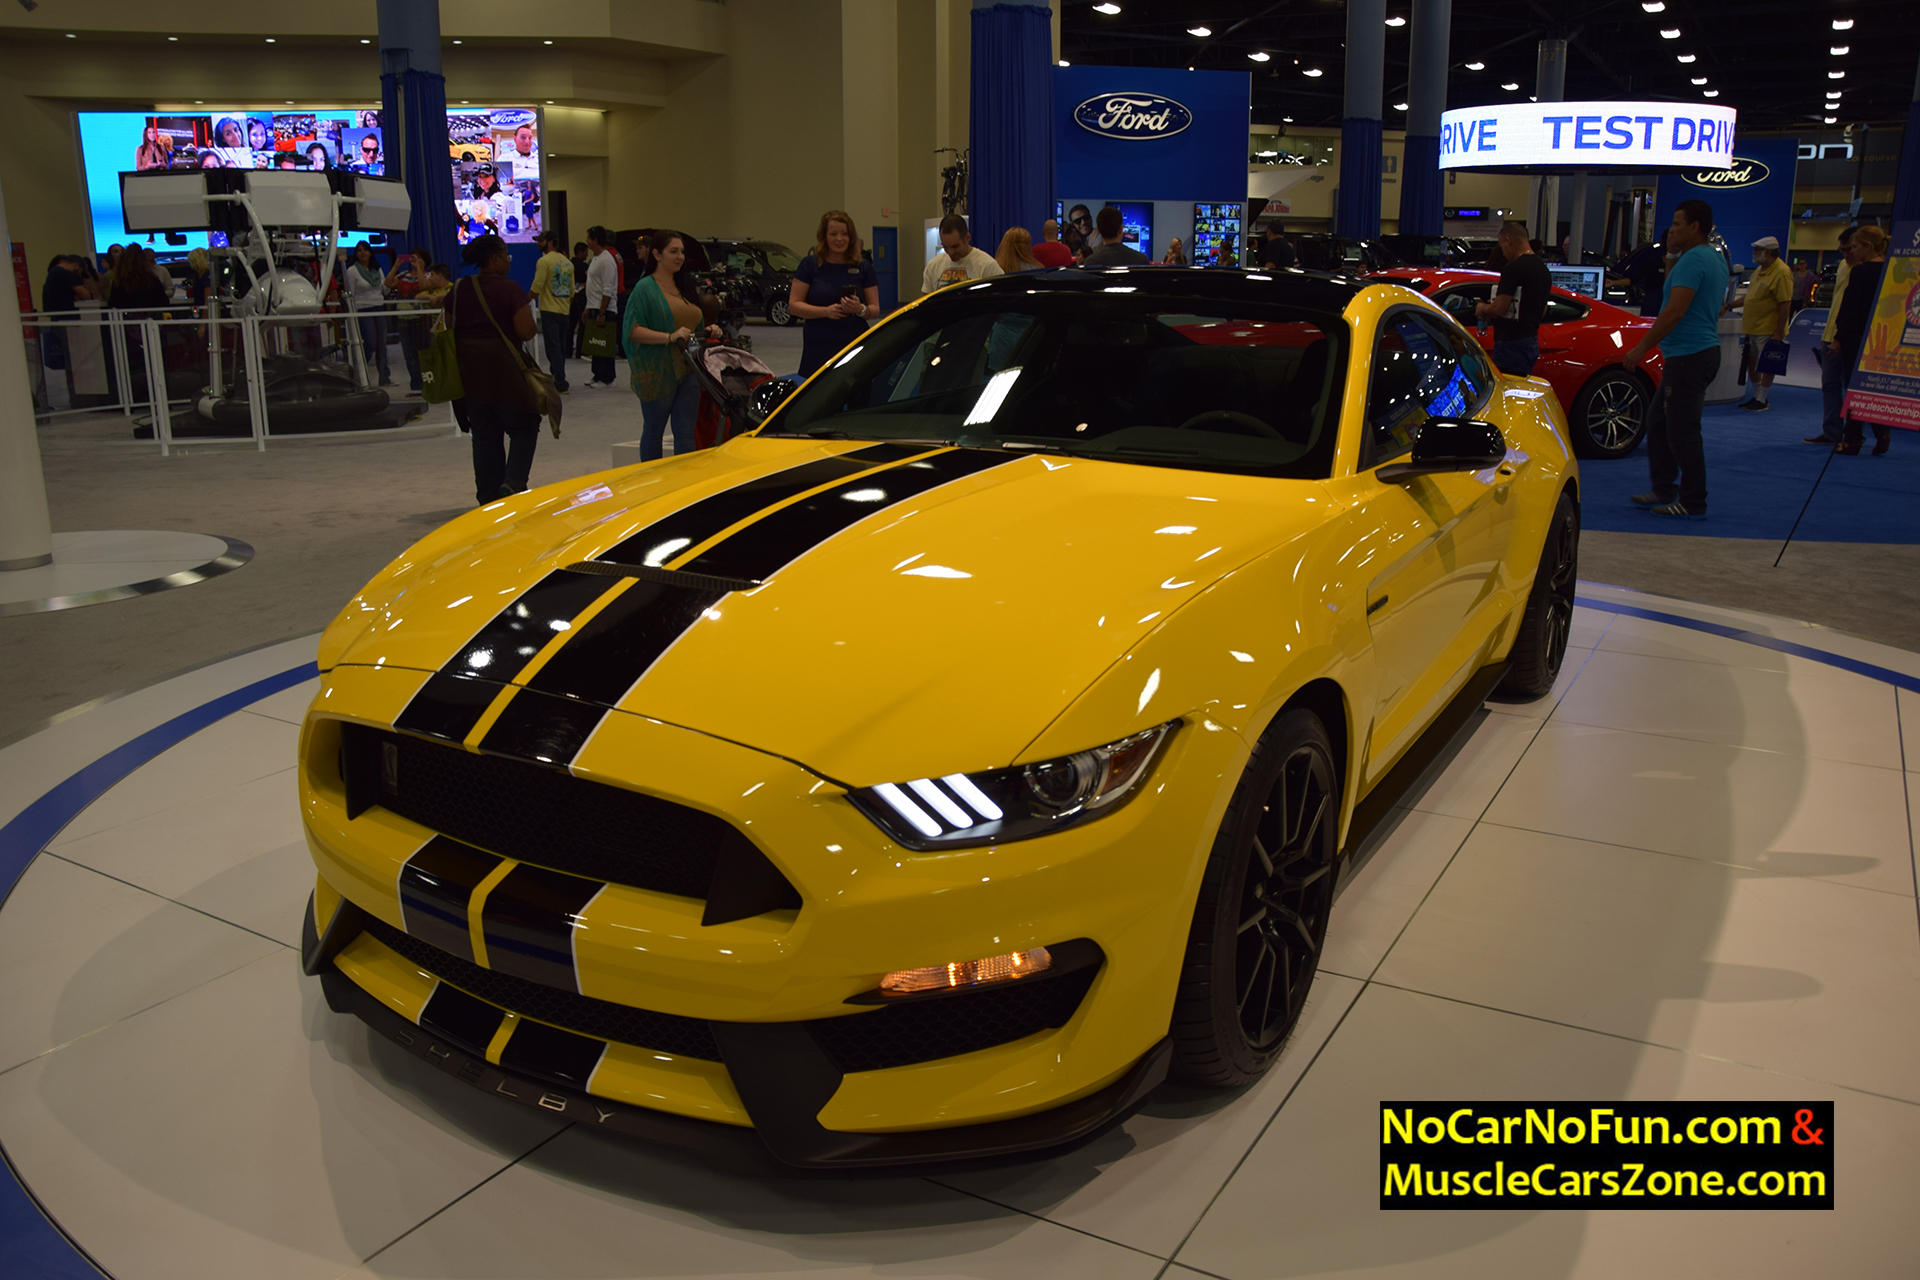 2016 Ford Mustang Shelby Gt 350 Miami Auto Show 2017 1